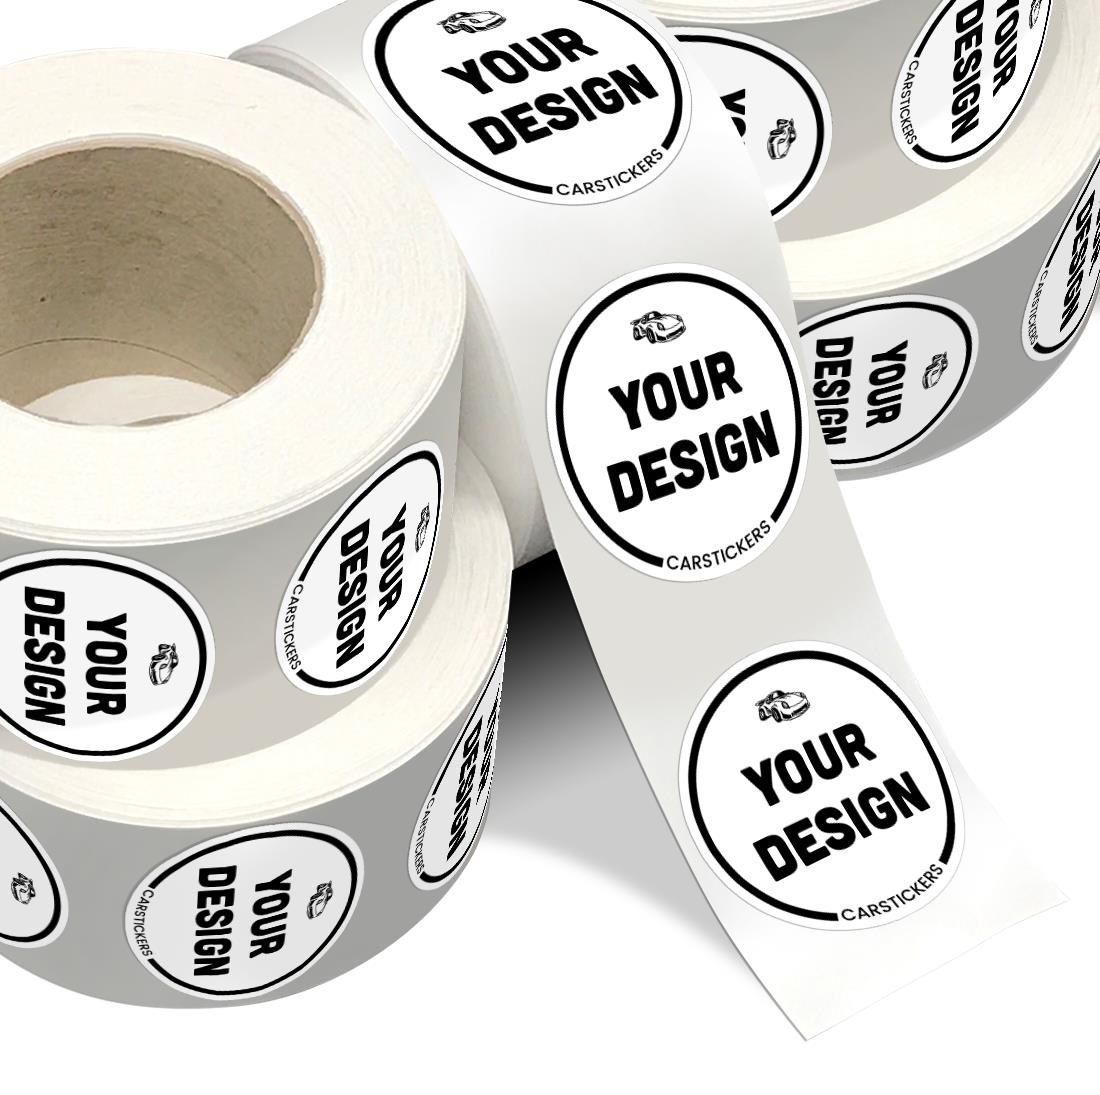 Printed roll labels are a cost effective way to order stickers or labels in bulk for both business and personal use